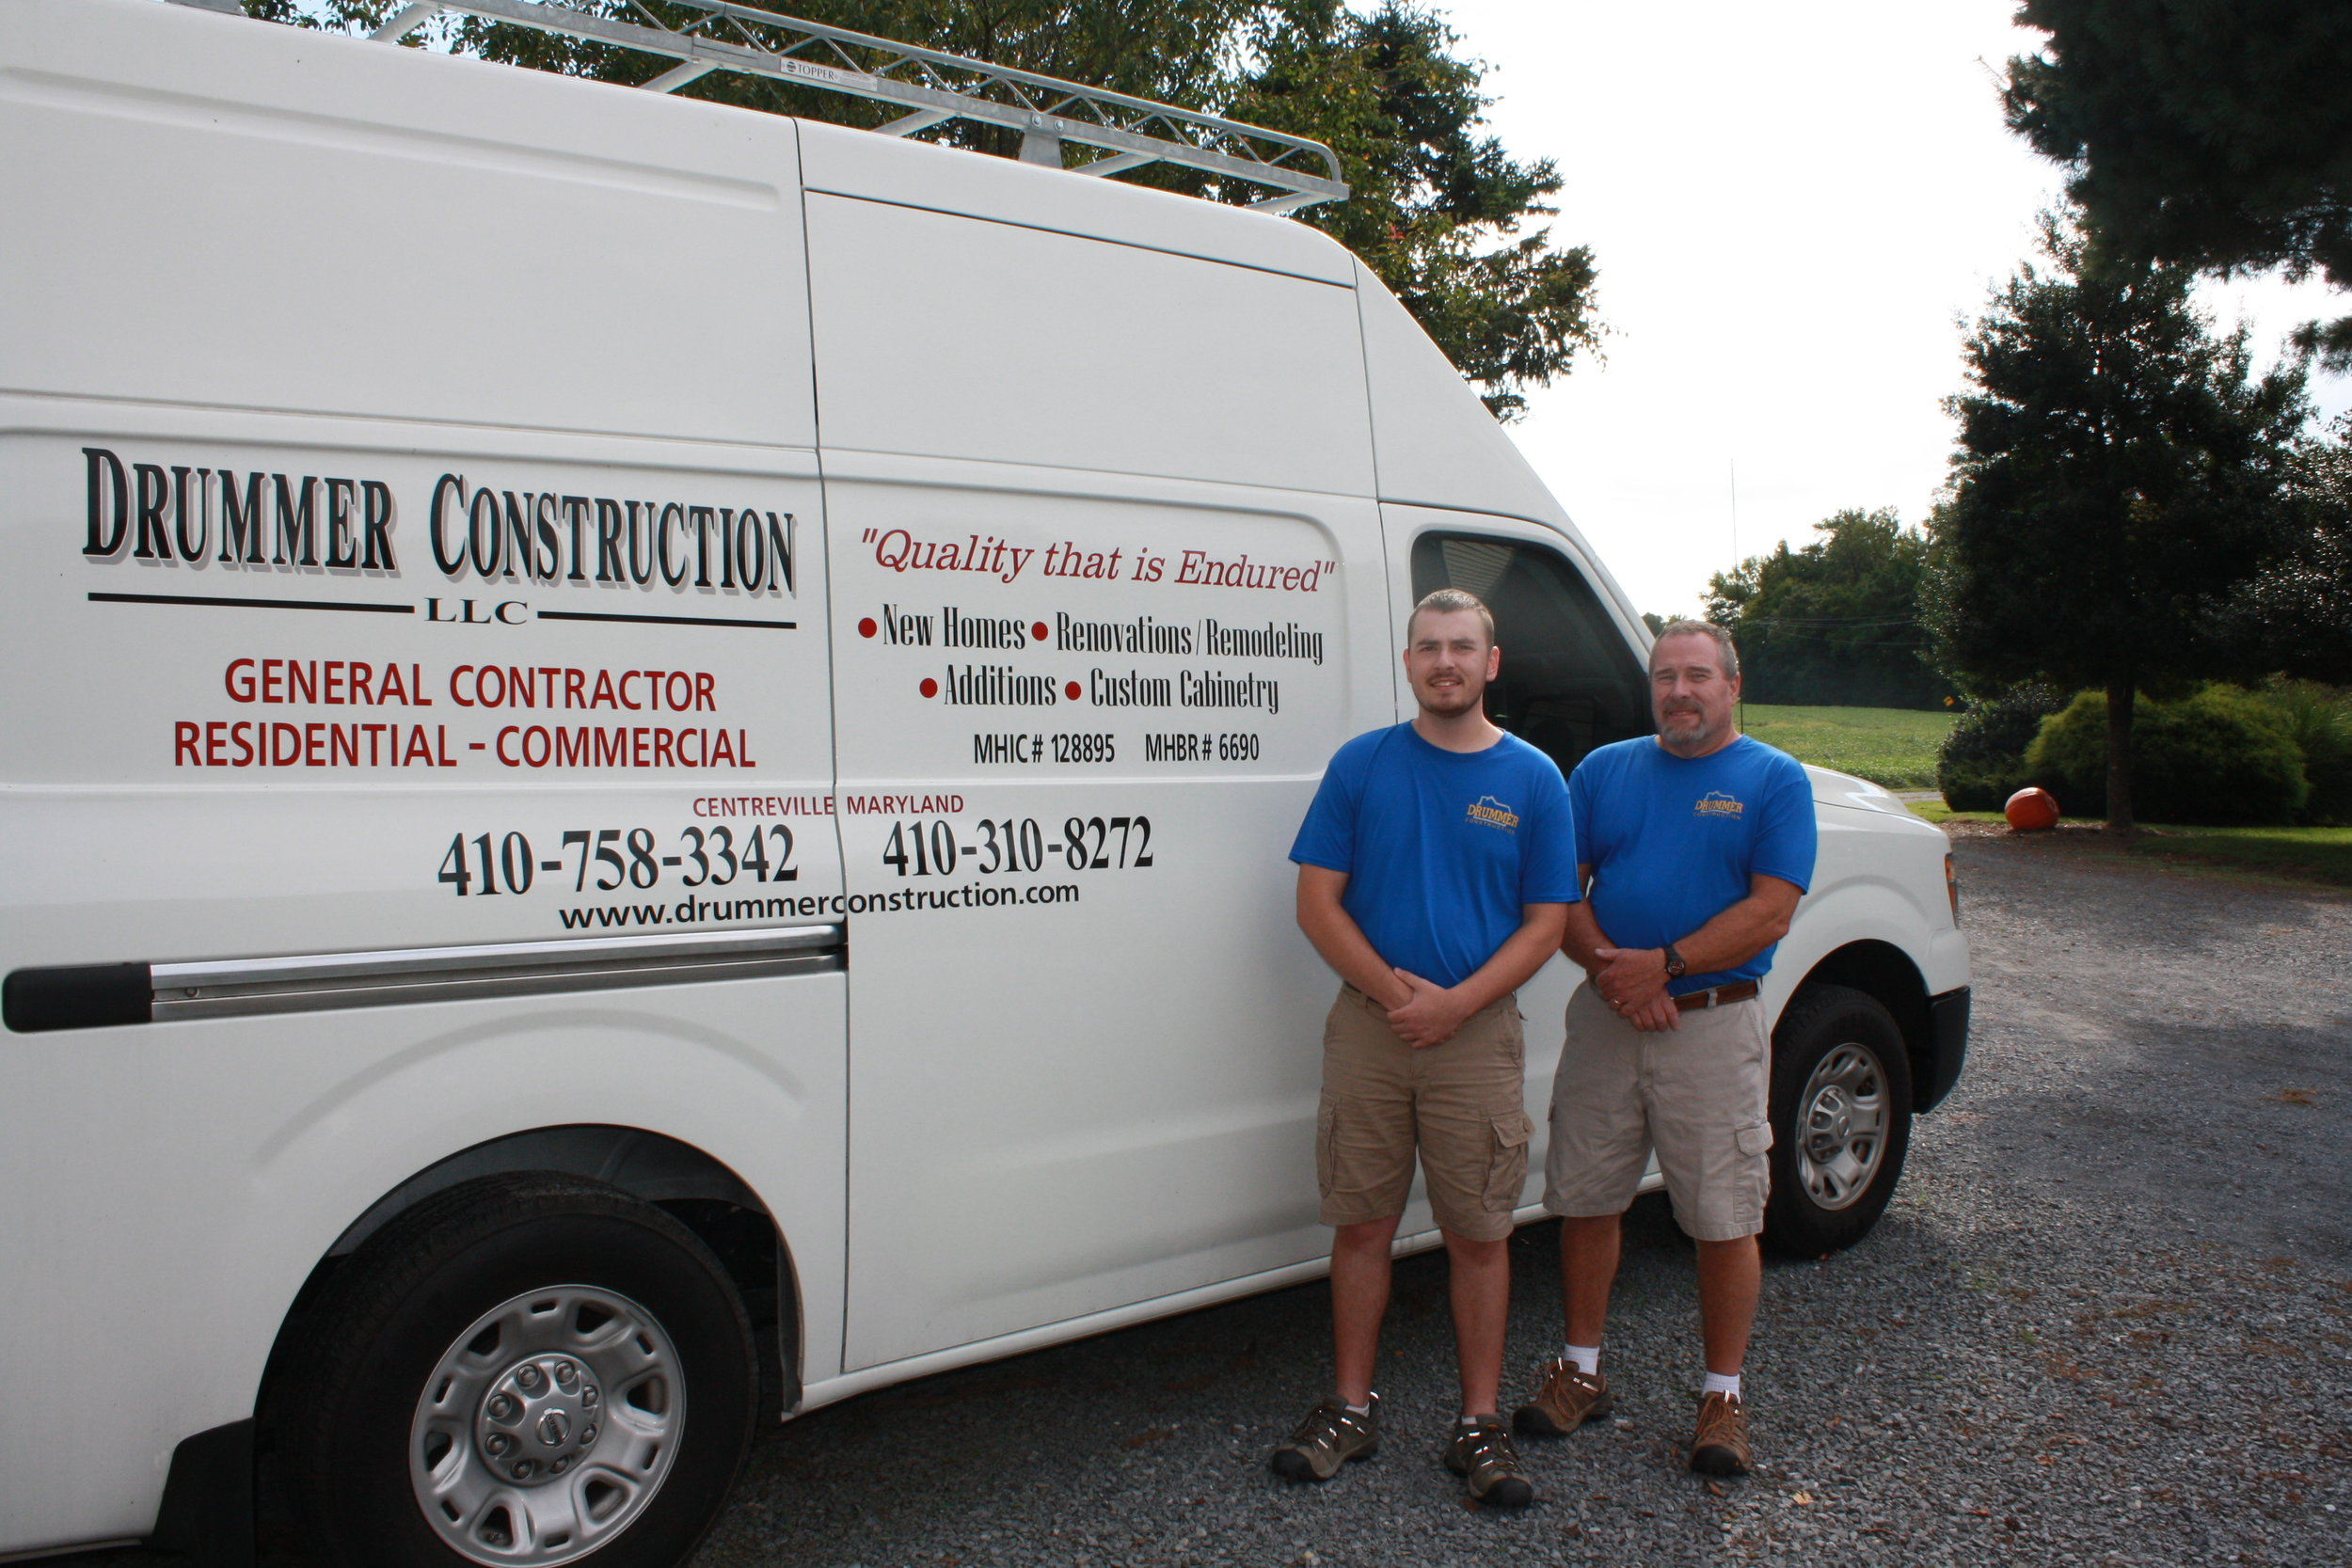 Dan and Son with van image.JPG